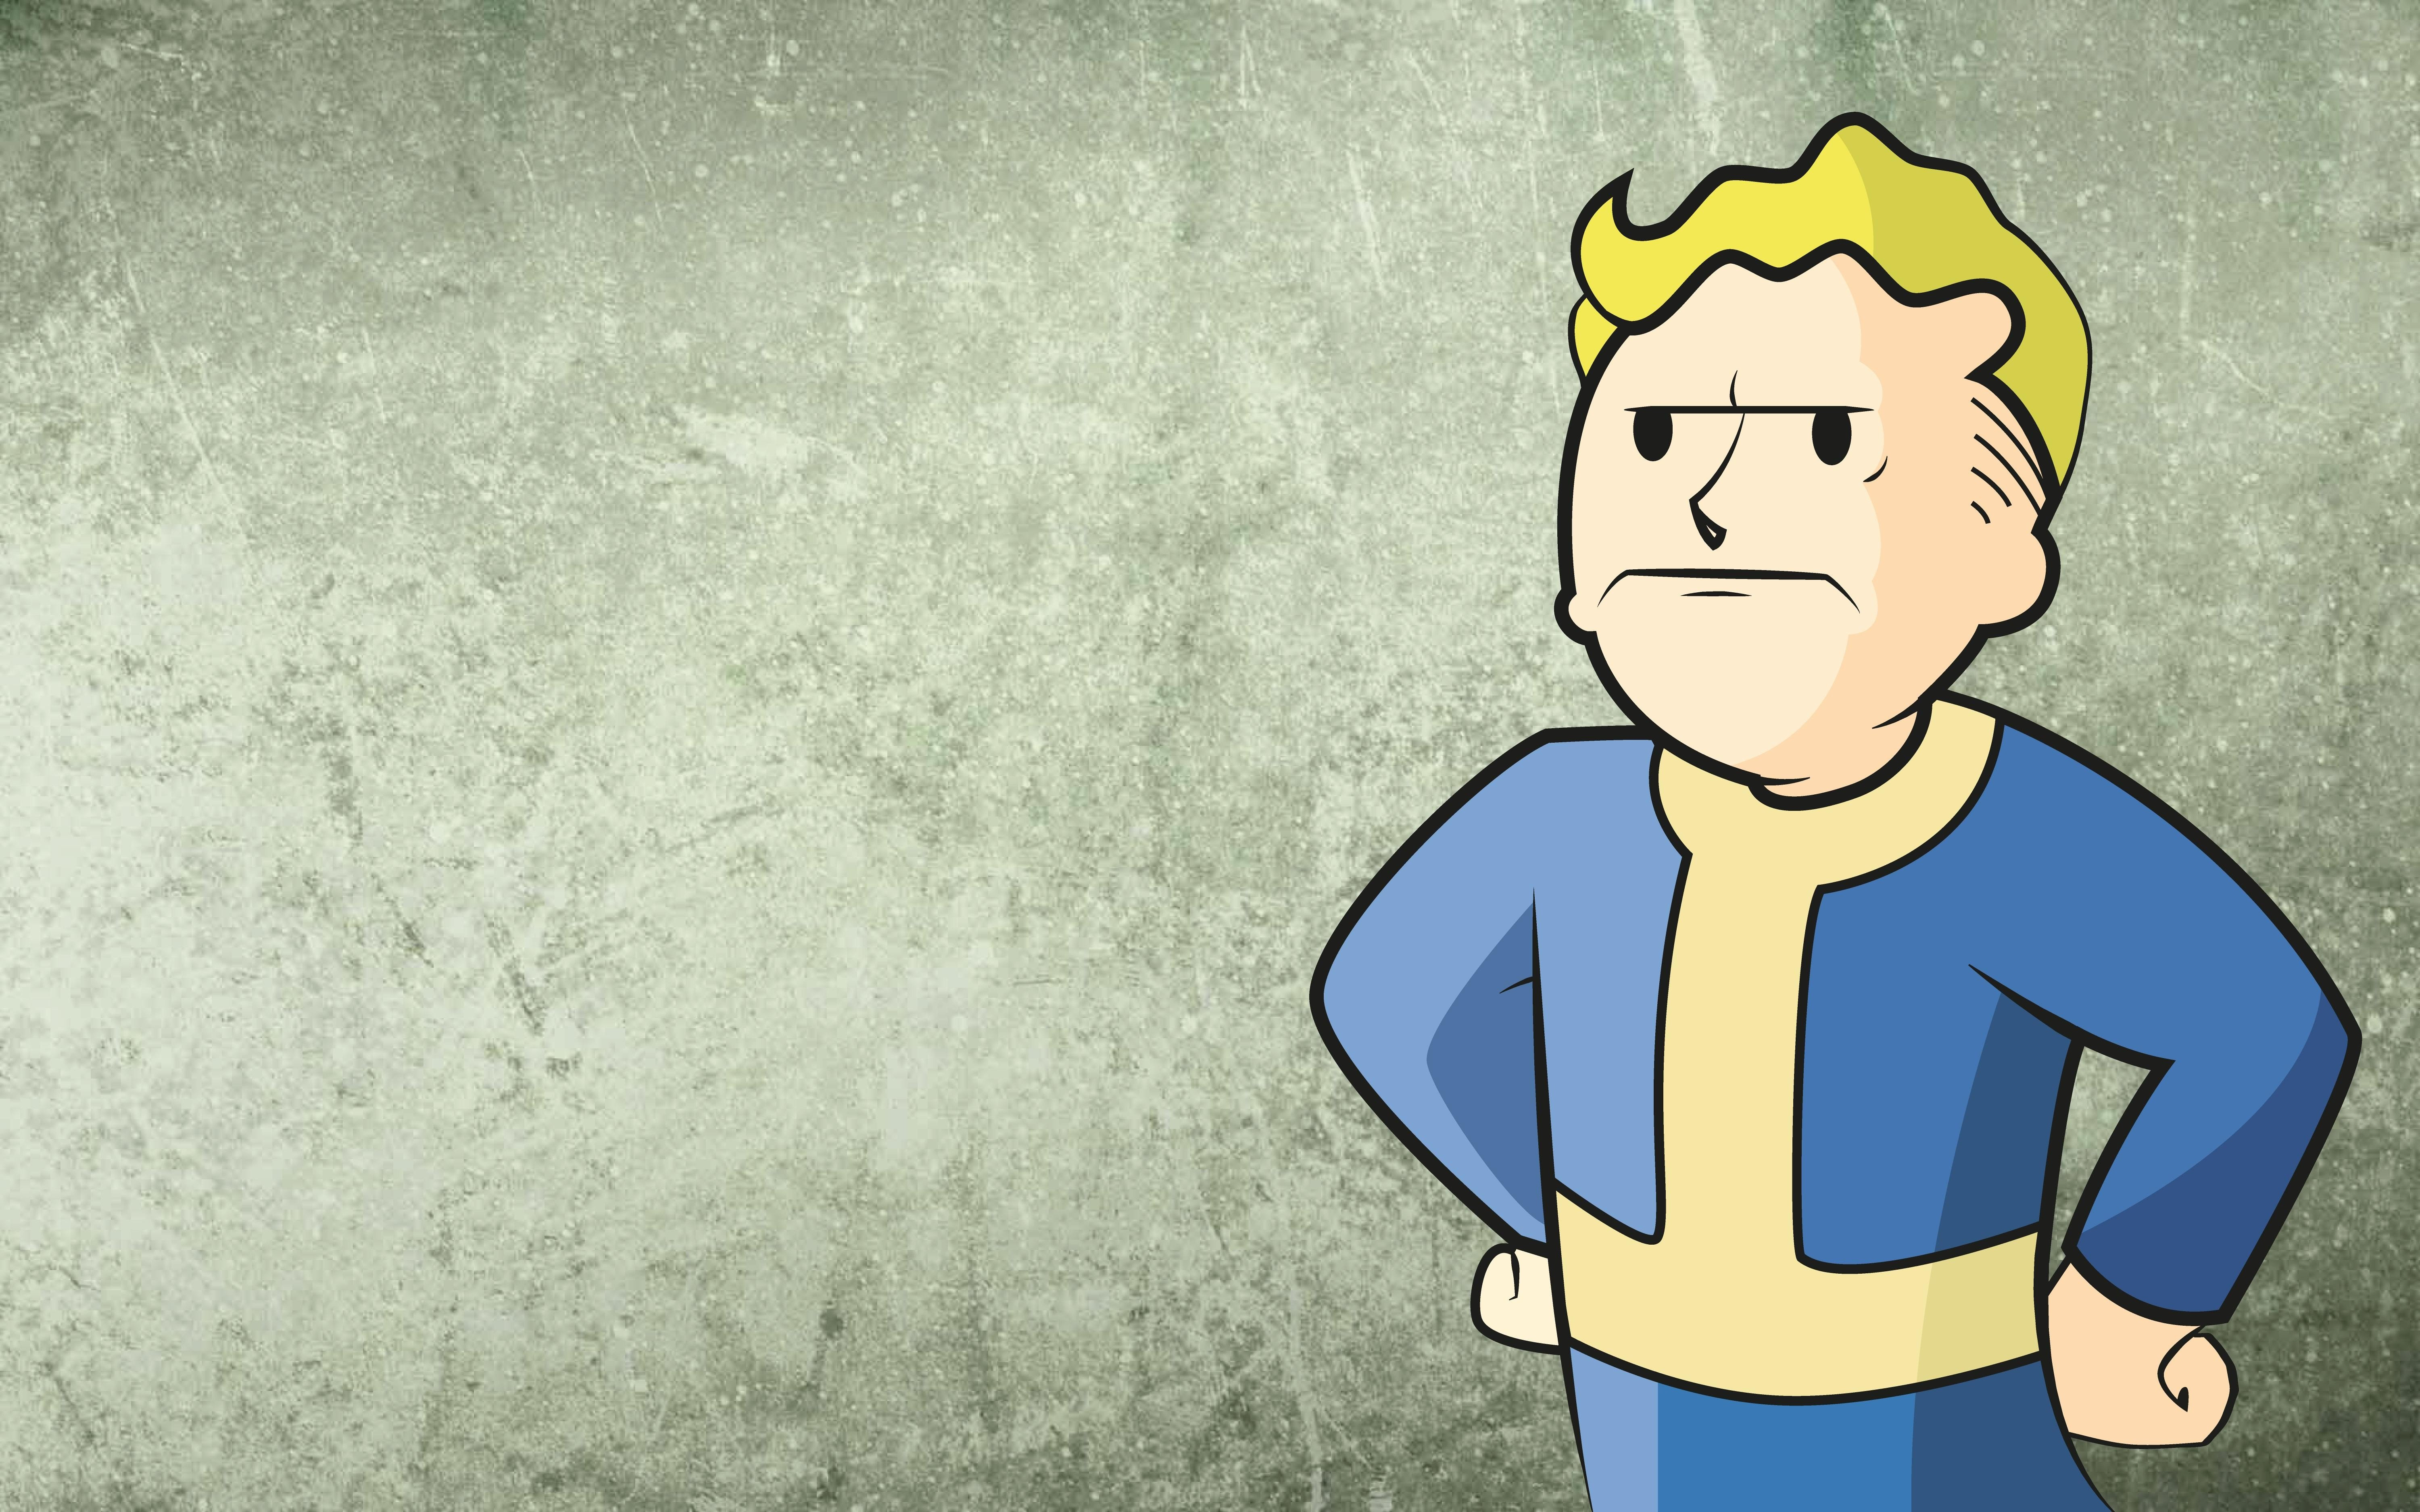 Free Download Fallout Pip Boy Wallpapers Hd 6000x3750 For Your